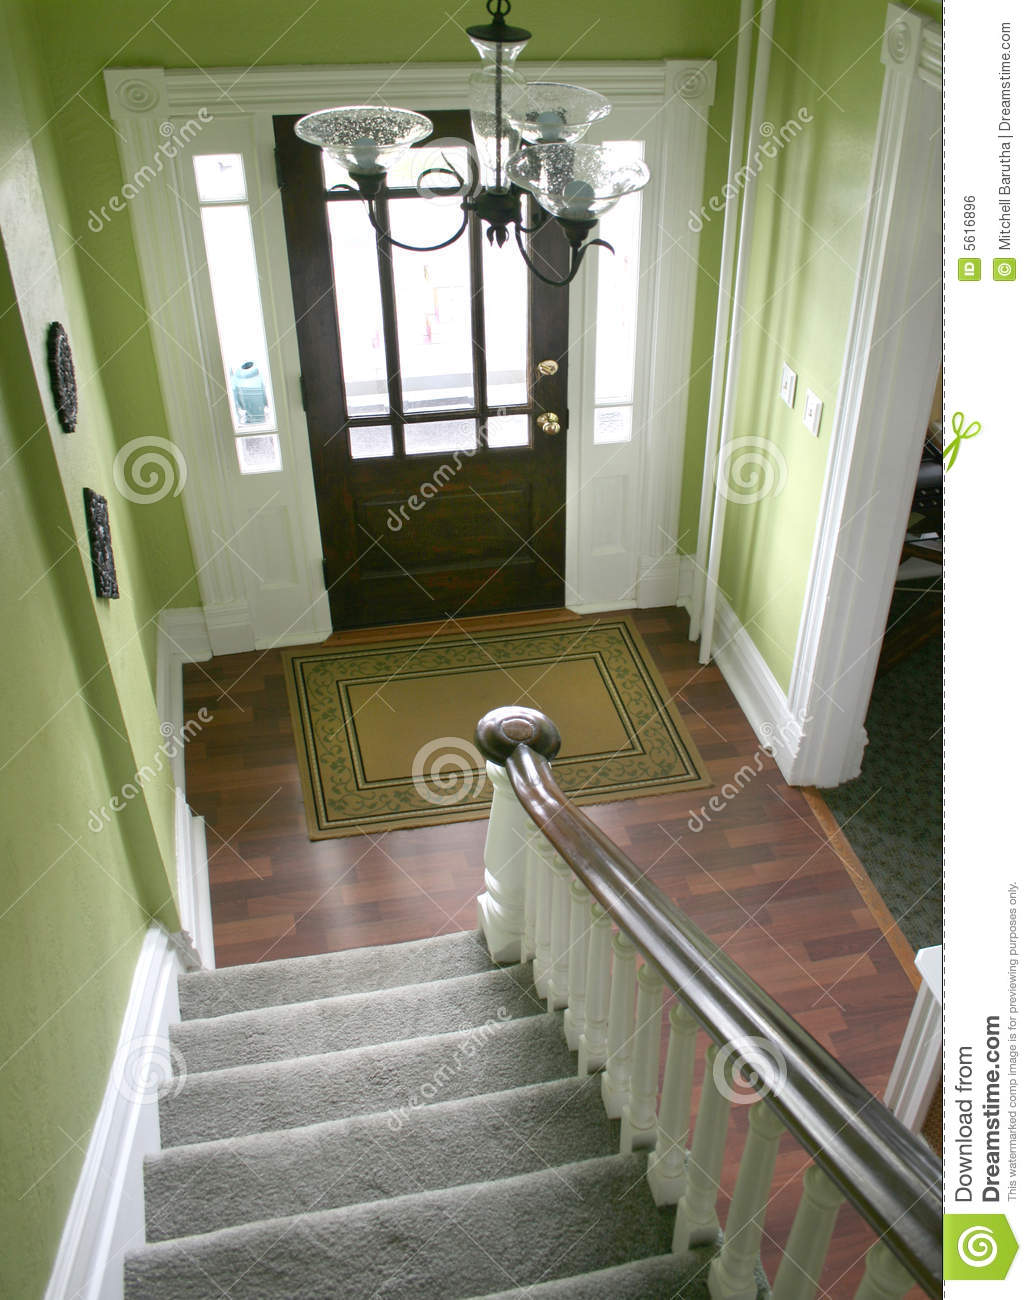 living room pictures clipart grey paint colors entry hall stairs and front door royalty free stock image ...